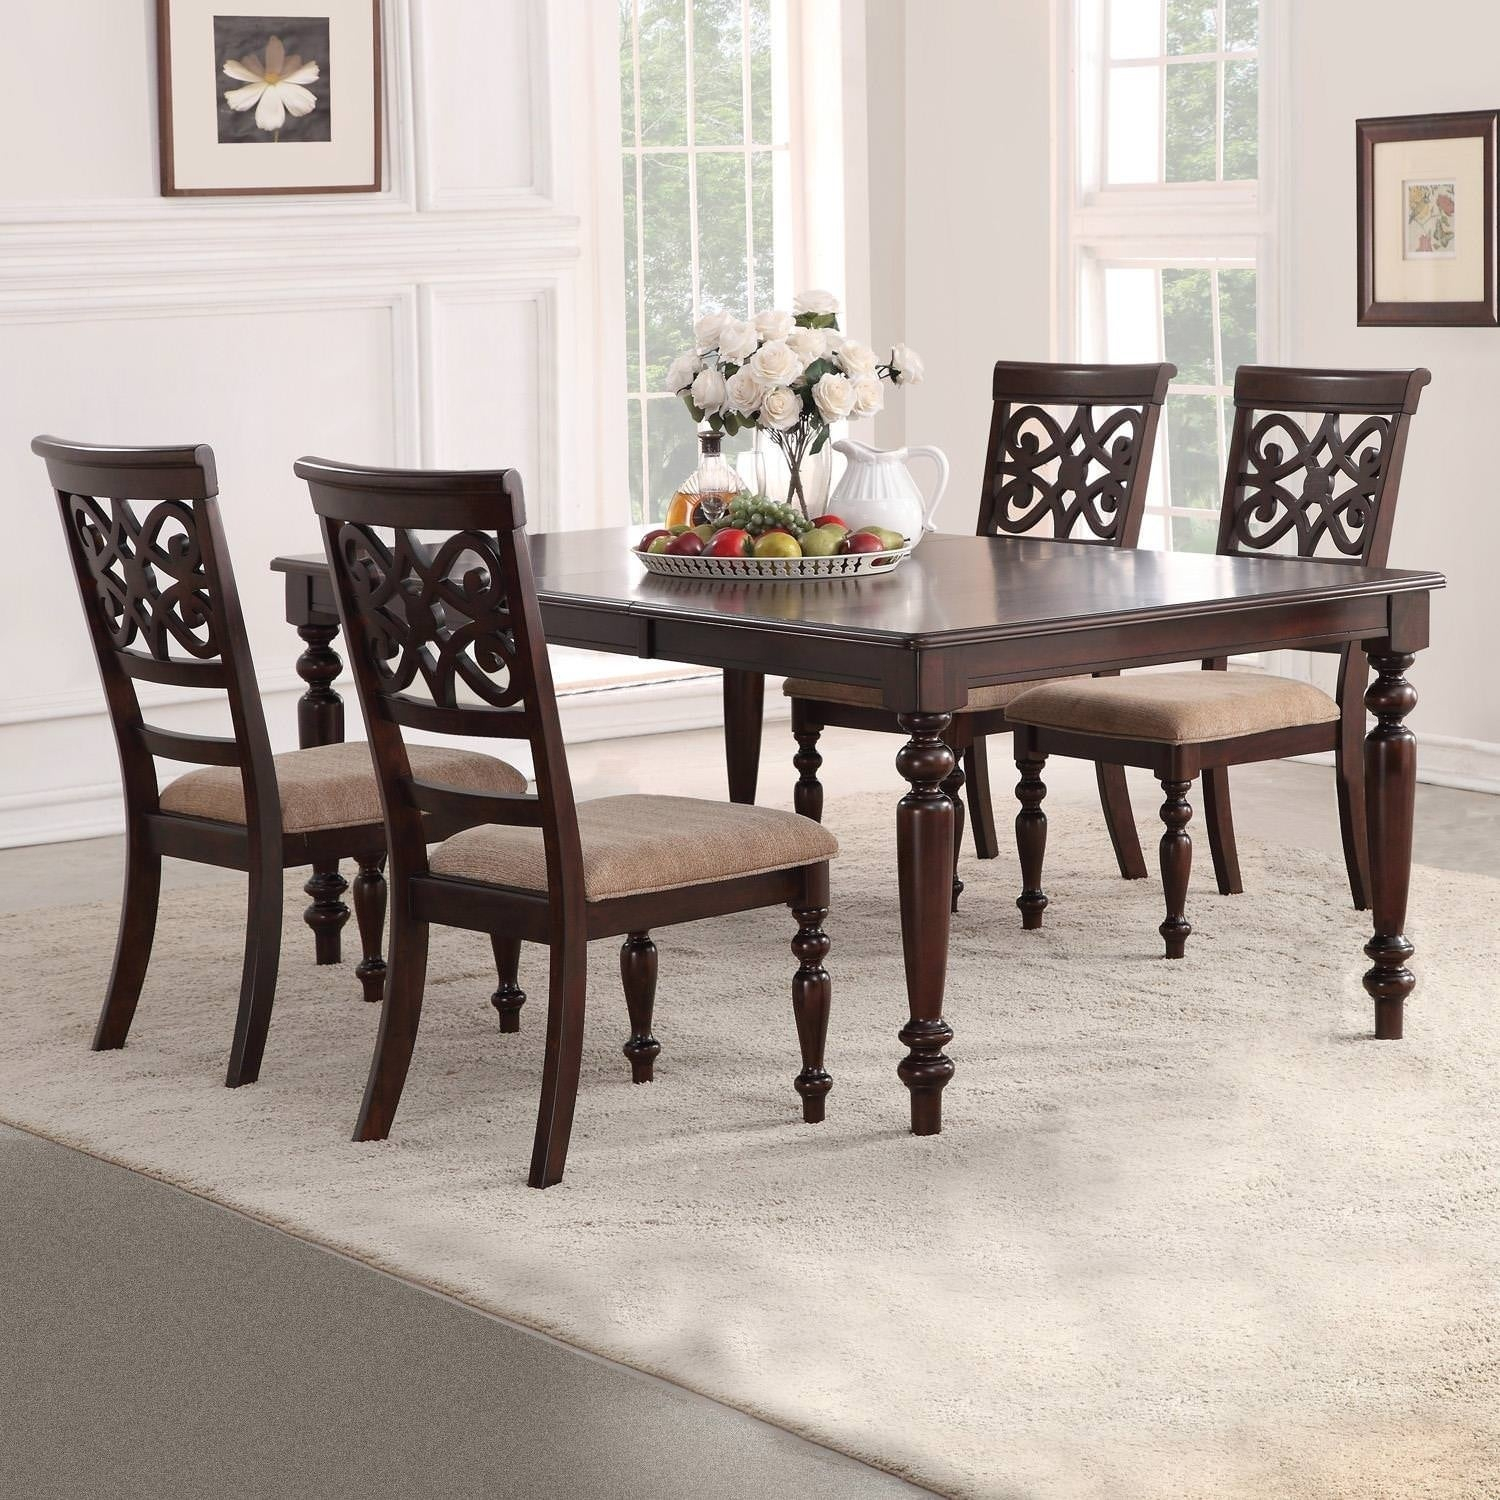 Home Source Laconia Walnut 5 Piece Dining Set Intended For 2018 Laconia 7 Pieces Solid Wood Dining Sets (Set Of 7) (Photo 12 of 20)